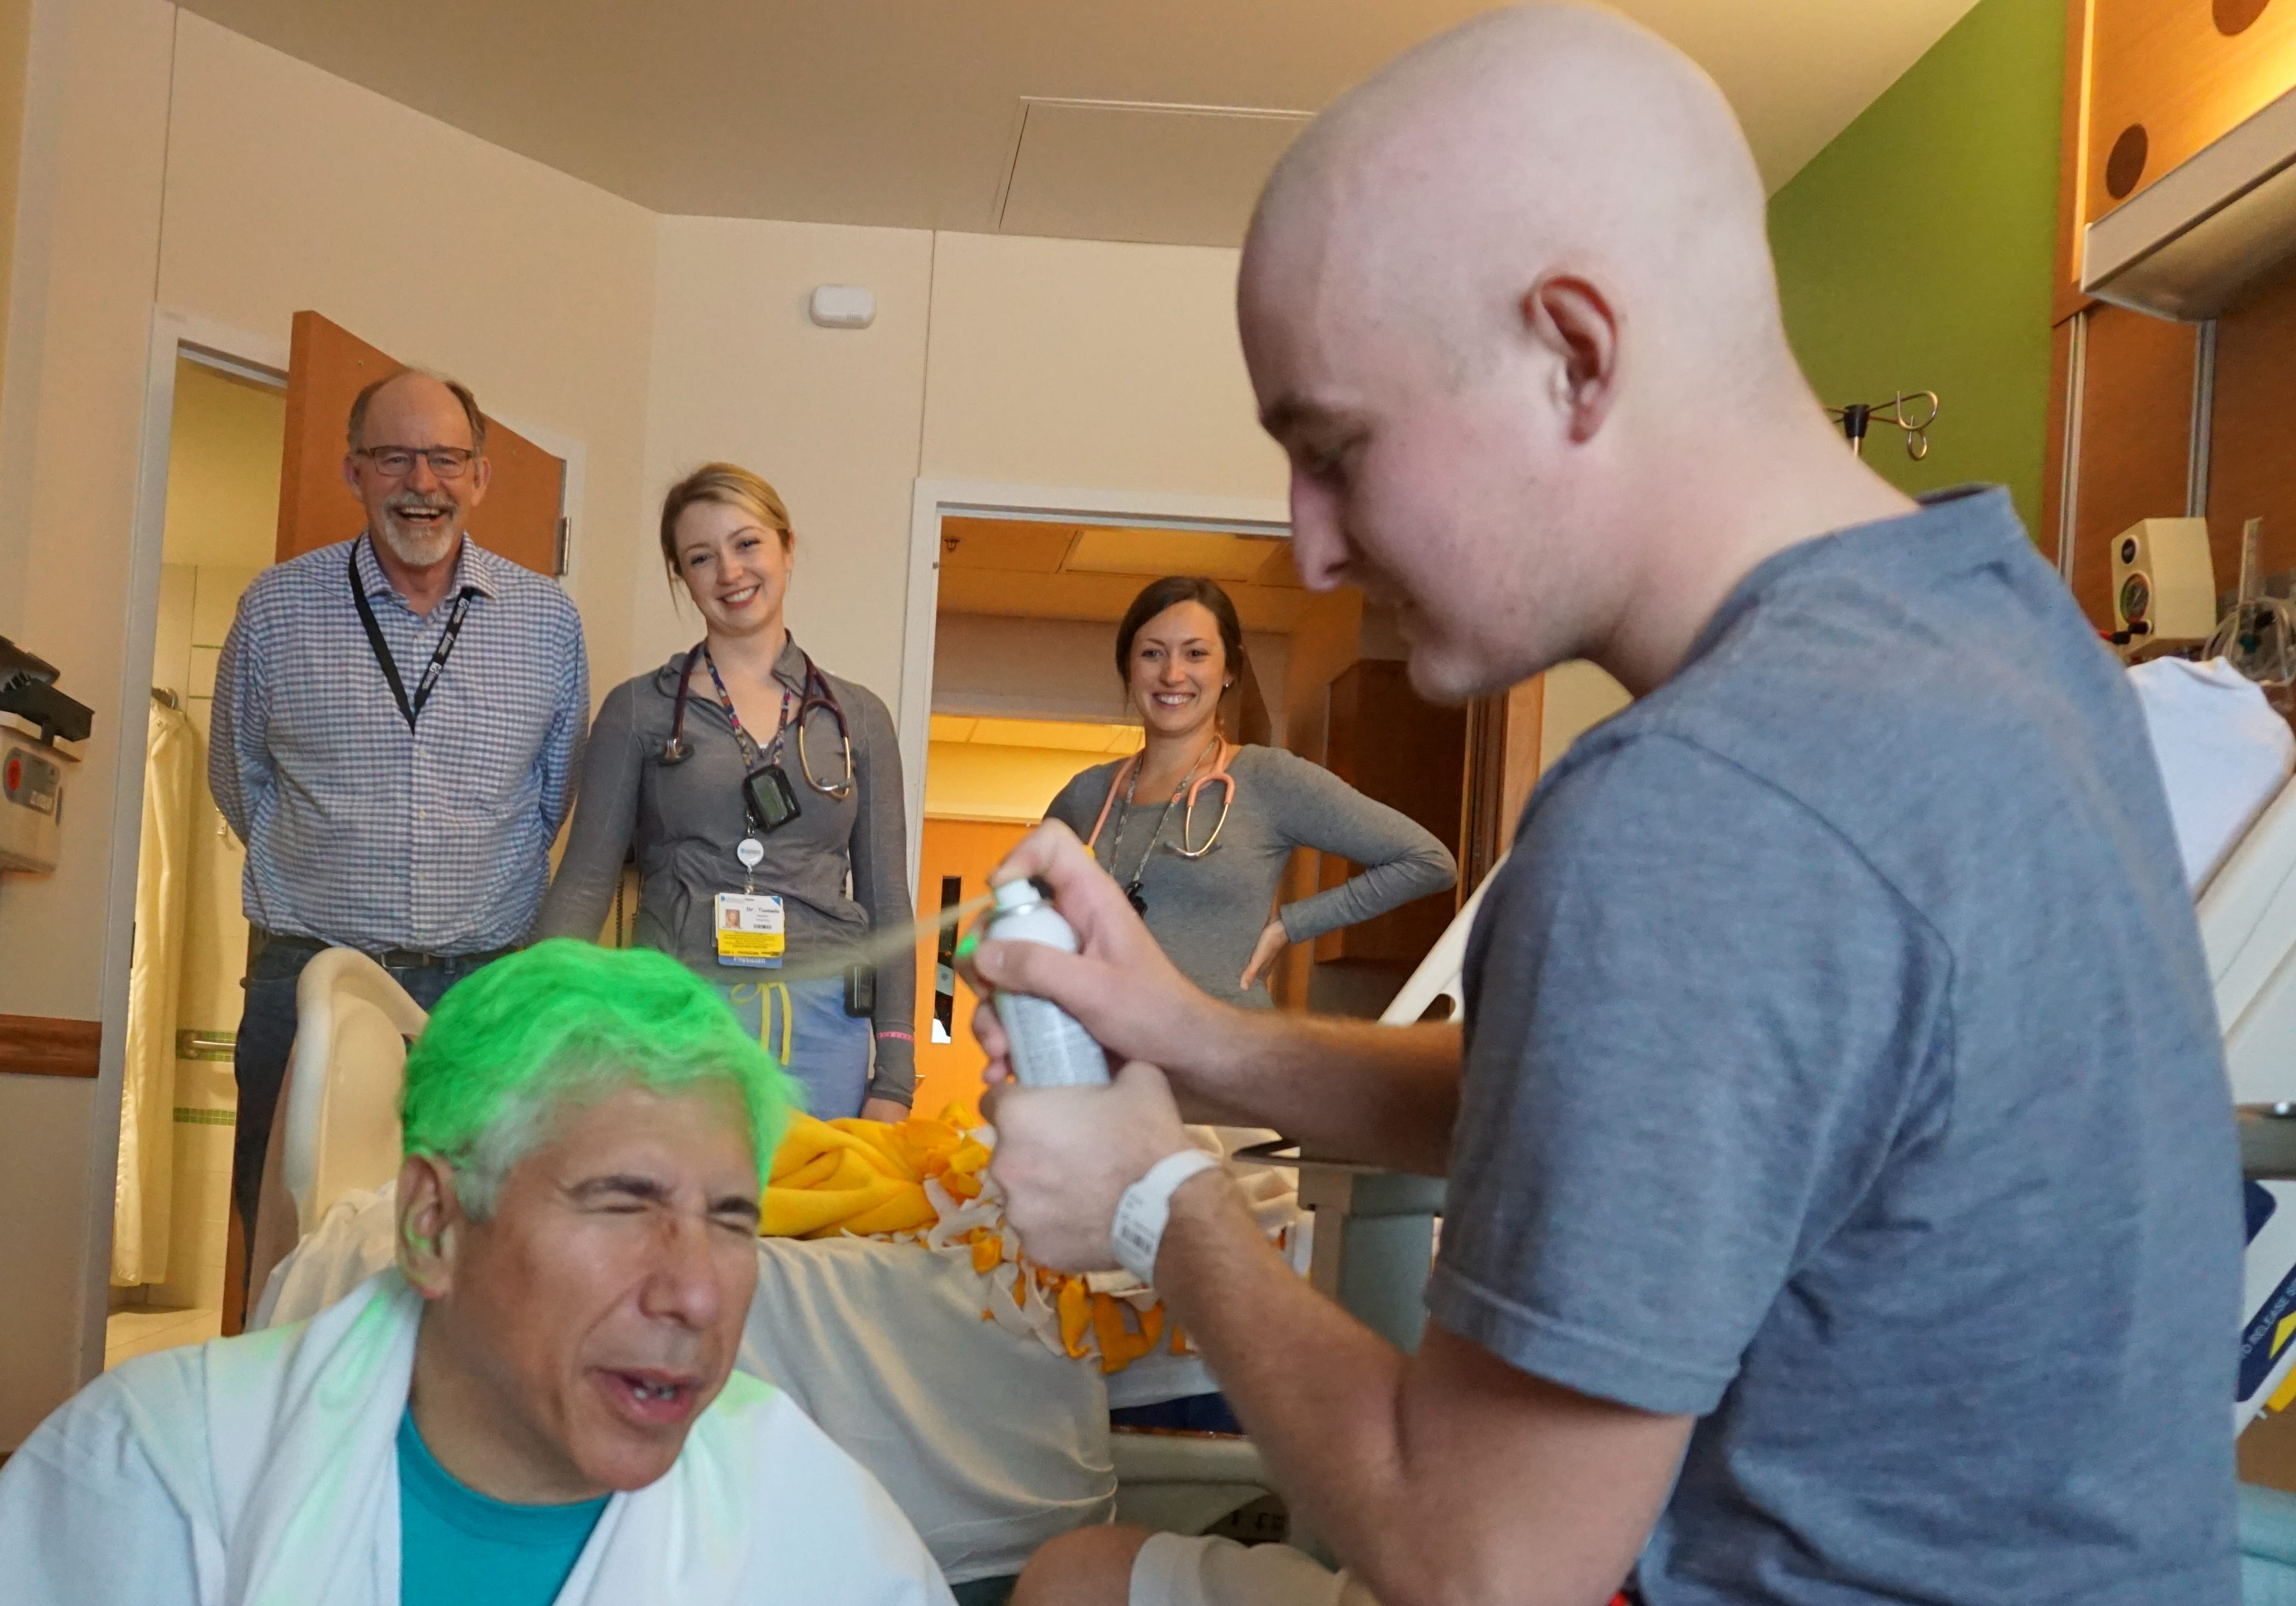 Patient Conner Lee sprays green dye on the hair of Dr. David Margolis of Children's Hospital of Wisconsin. The doctor allows patients to spray his hair green to support the Milwaukee Bucks during the NBA playoffs.